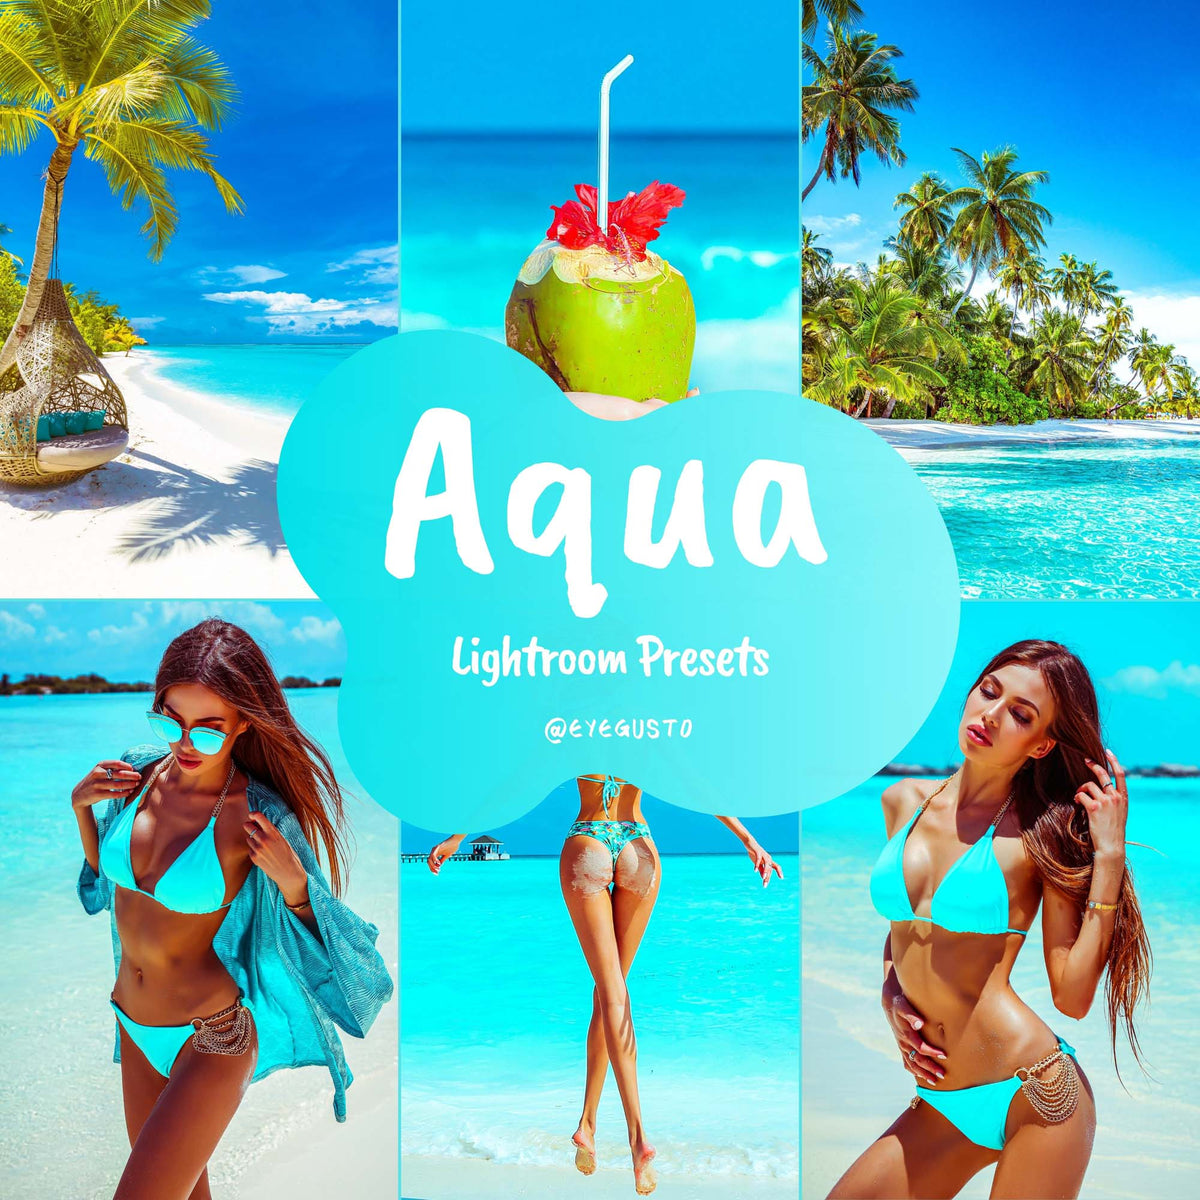 Aqua Lightroom Beach Presets Instagram Summer